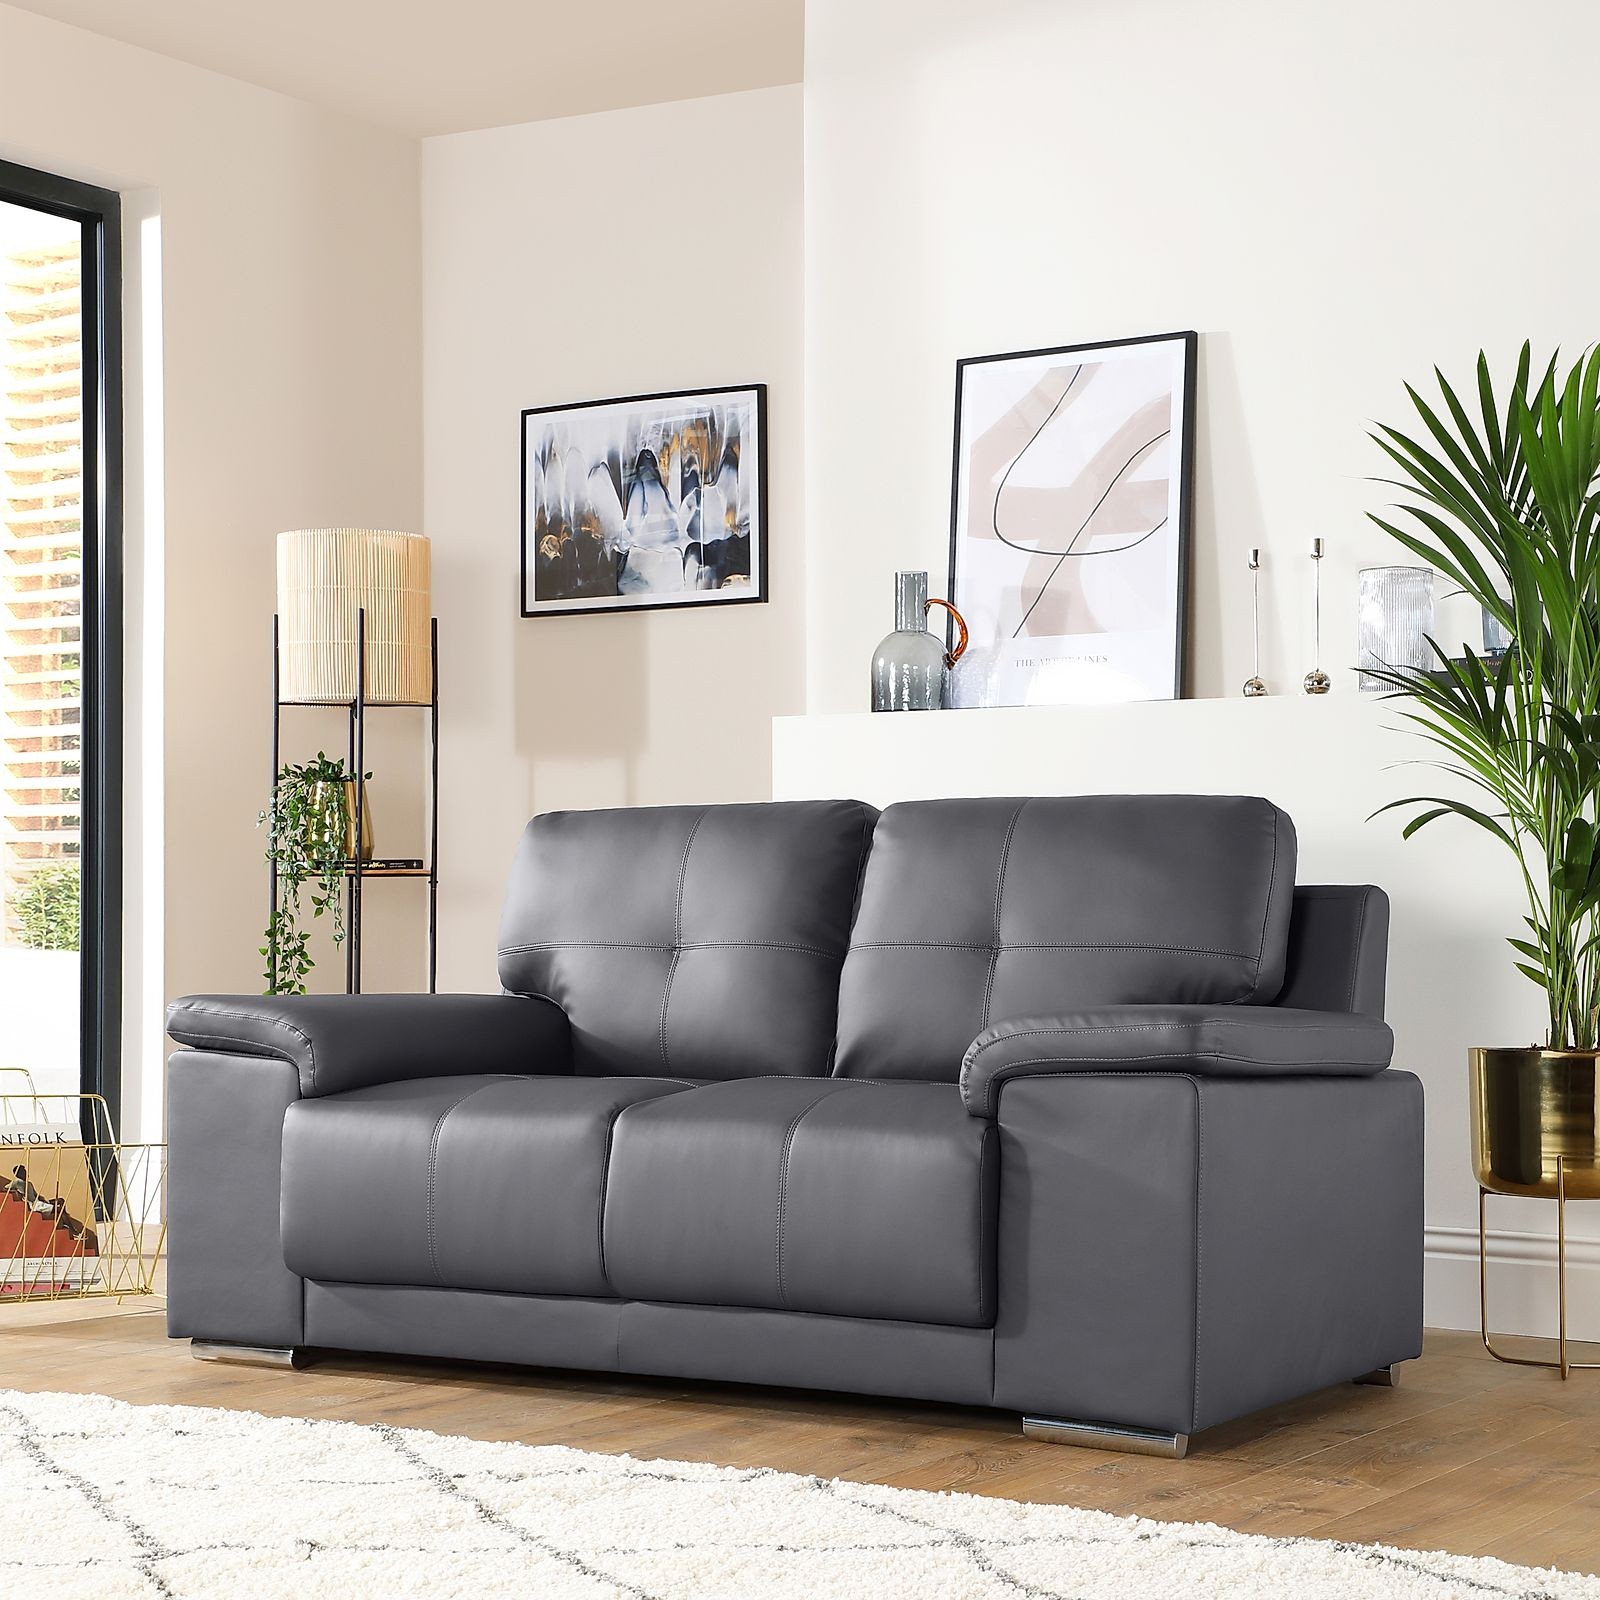 Kansas Grey Leather 2 Seater Sofa | Furniture Choice In Two Seater Sofas (View 1 of 15)